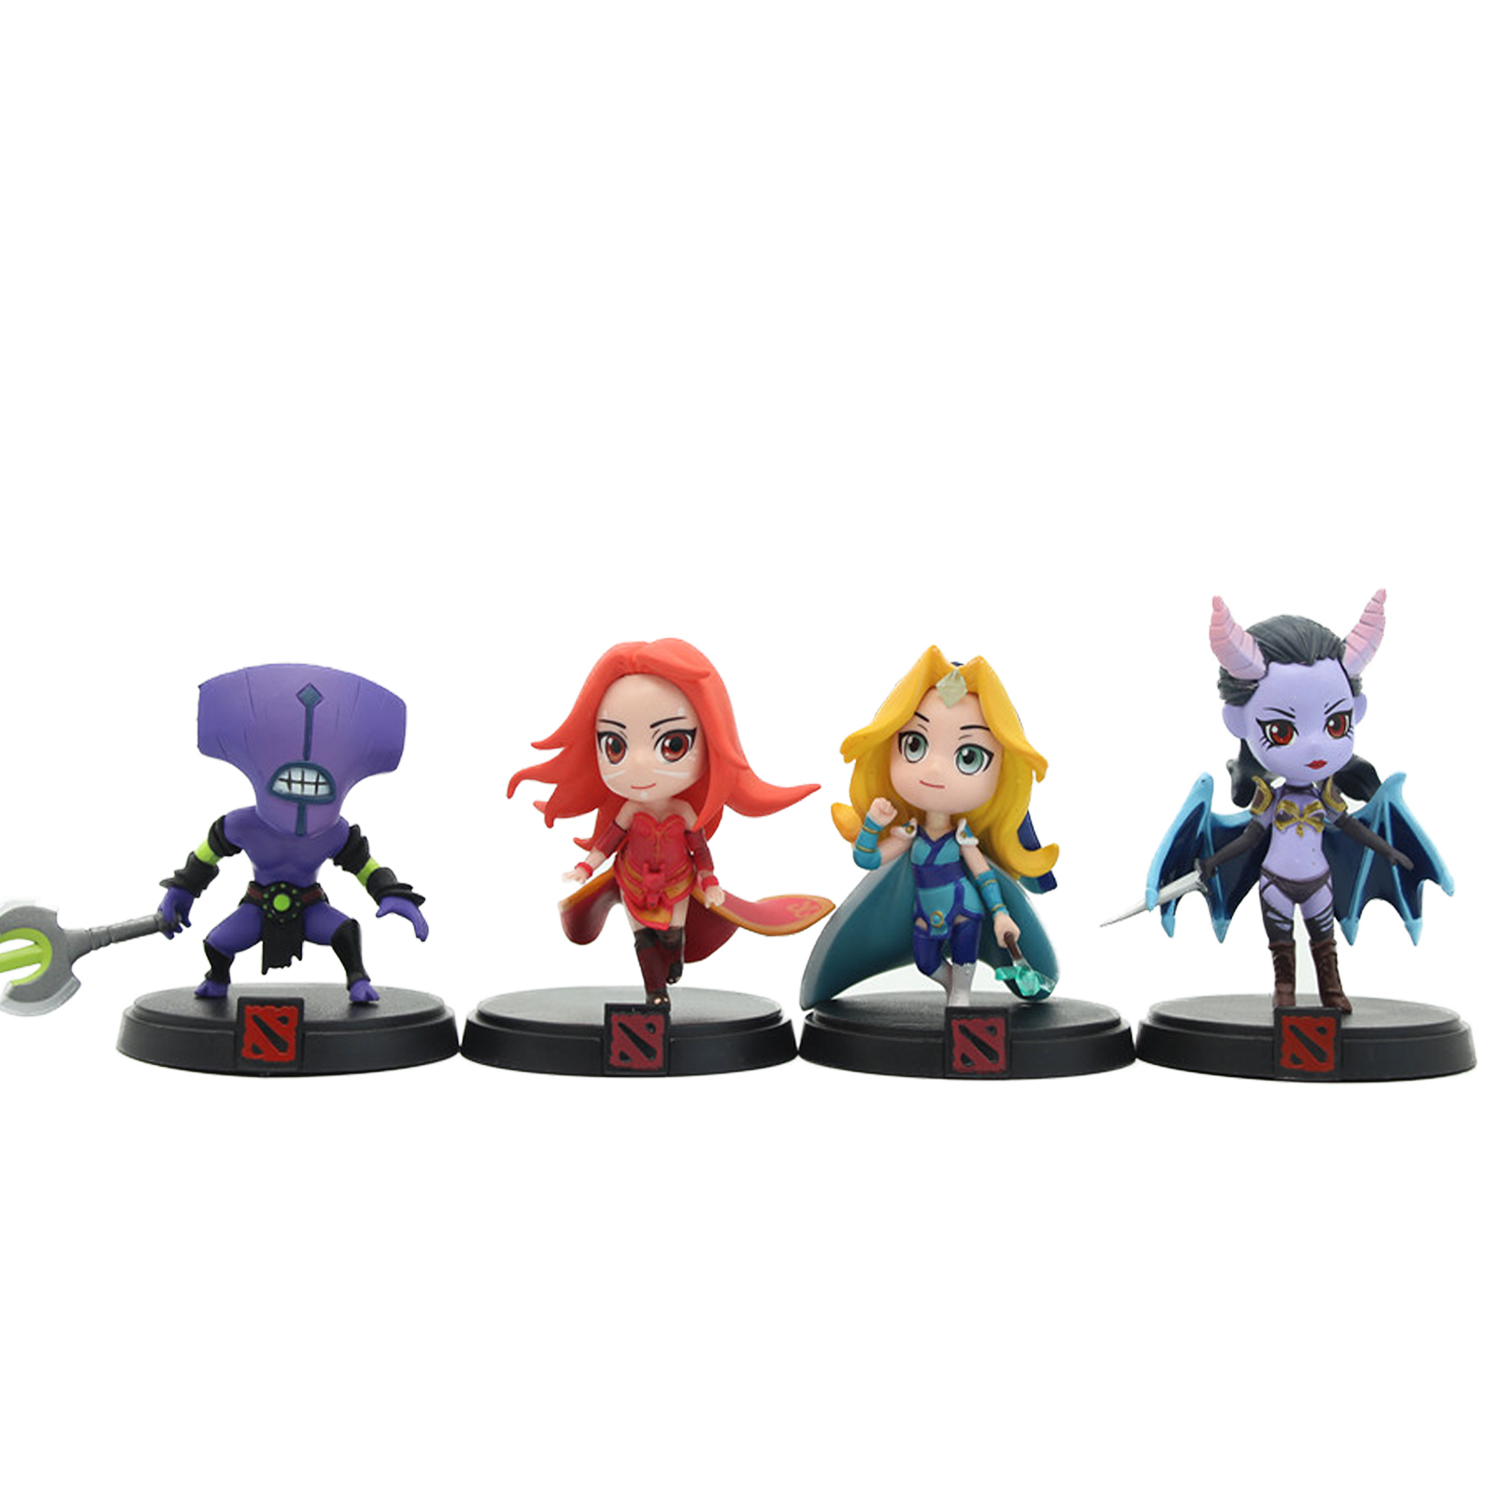 Chanycore DOTA 2 Game Figure Crystal Maiden Faceless Void Lina Queen PVC Action Figures dota2 Toys roomers тарелка malibu 20 5 см